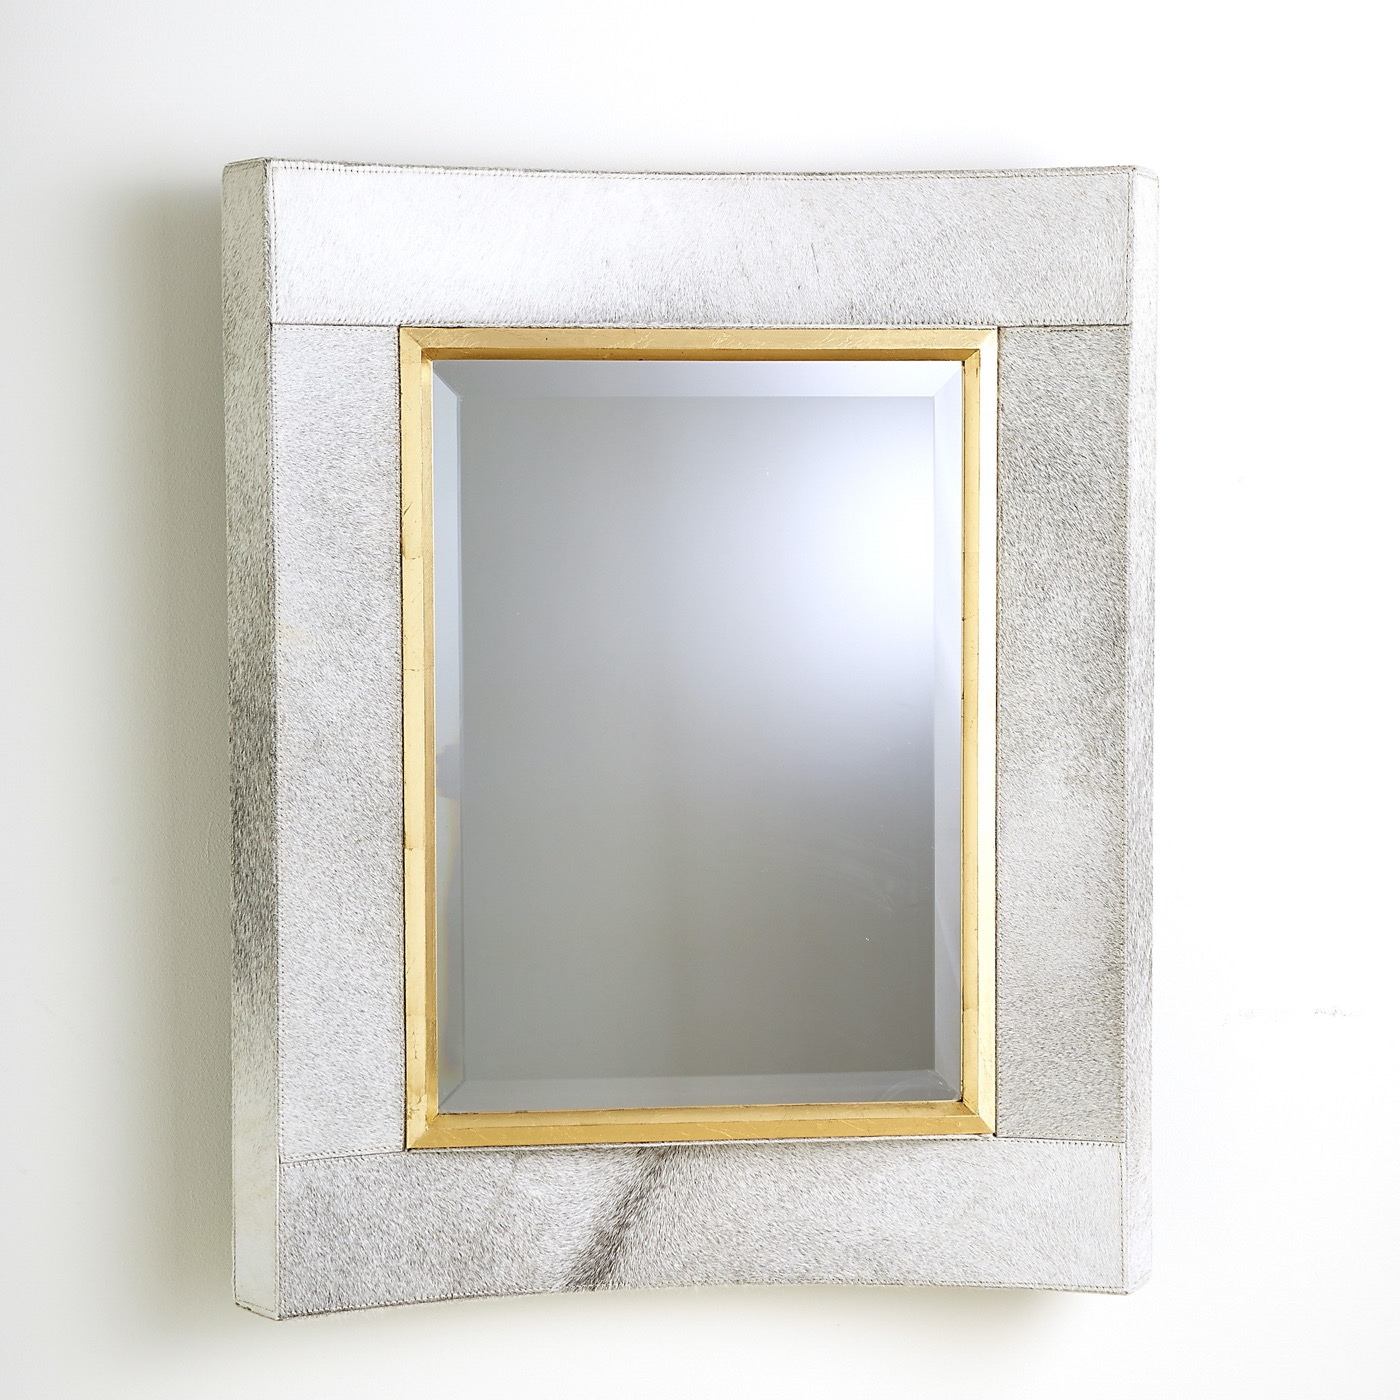 Ivory Wall Mirrors Intended For Preferred Modo Cowhode Wall Mirror (View 11 of 20)